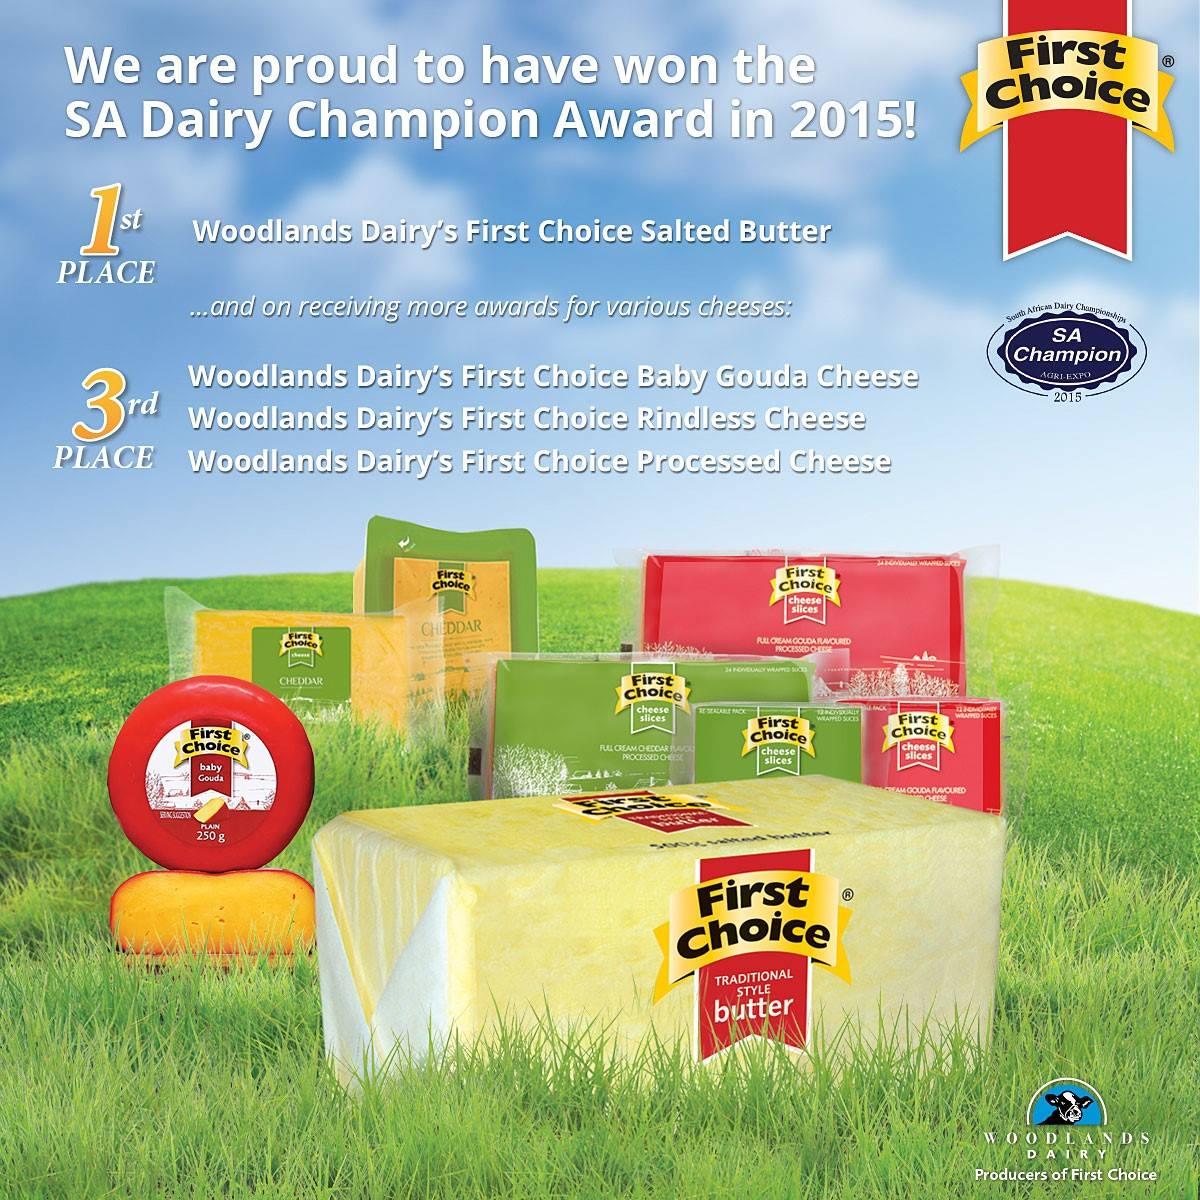 First Choice Wins SA Dairy Champion Award 2015